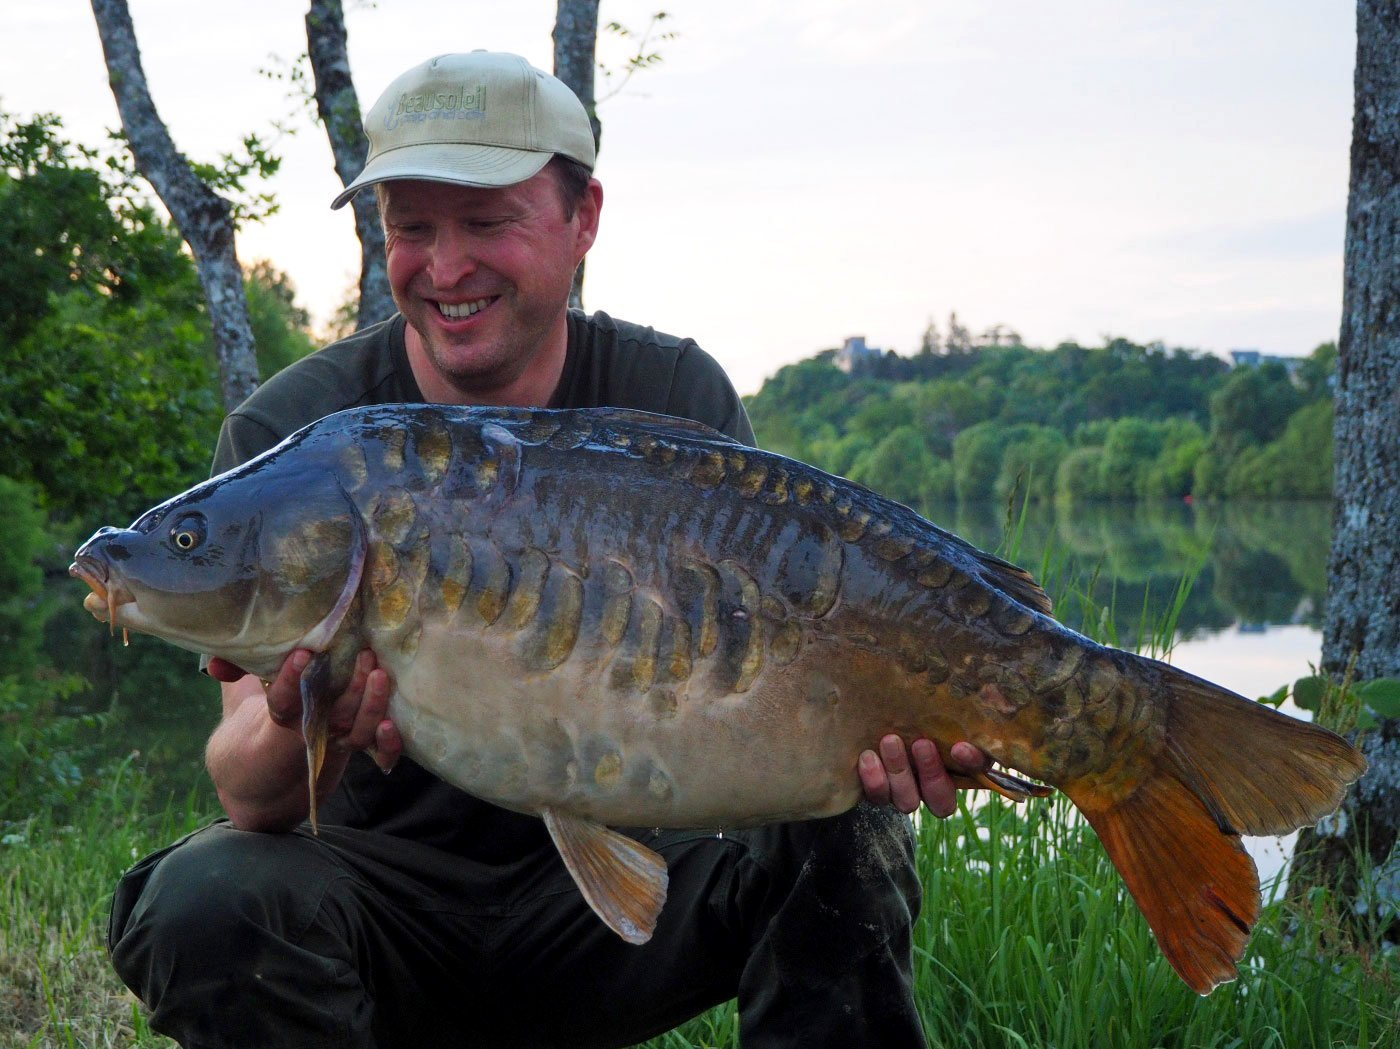 Matt with a new PB river carp of 32lb